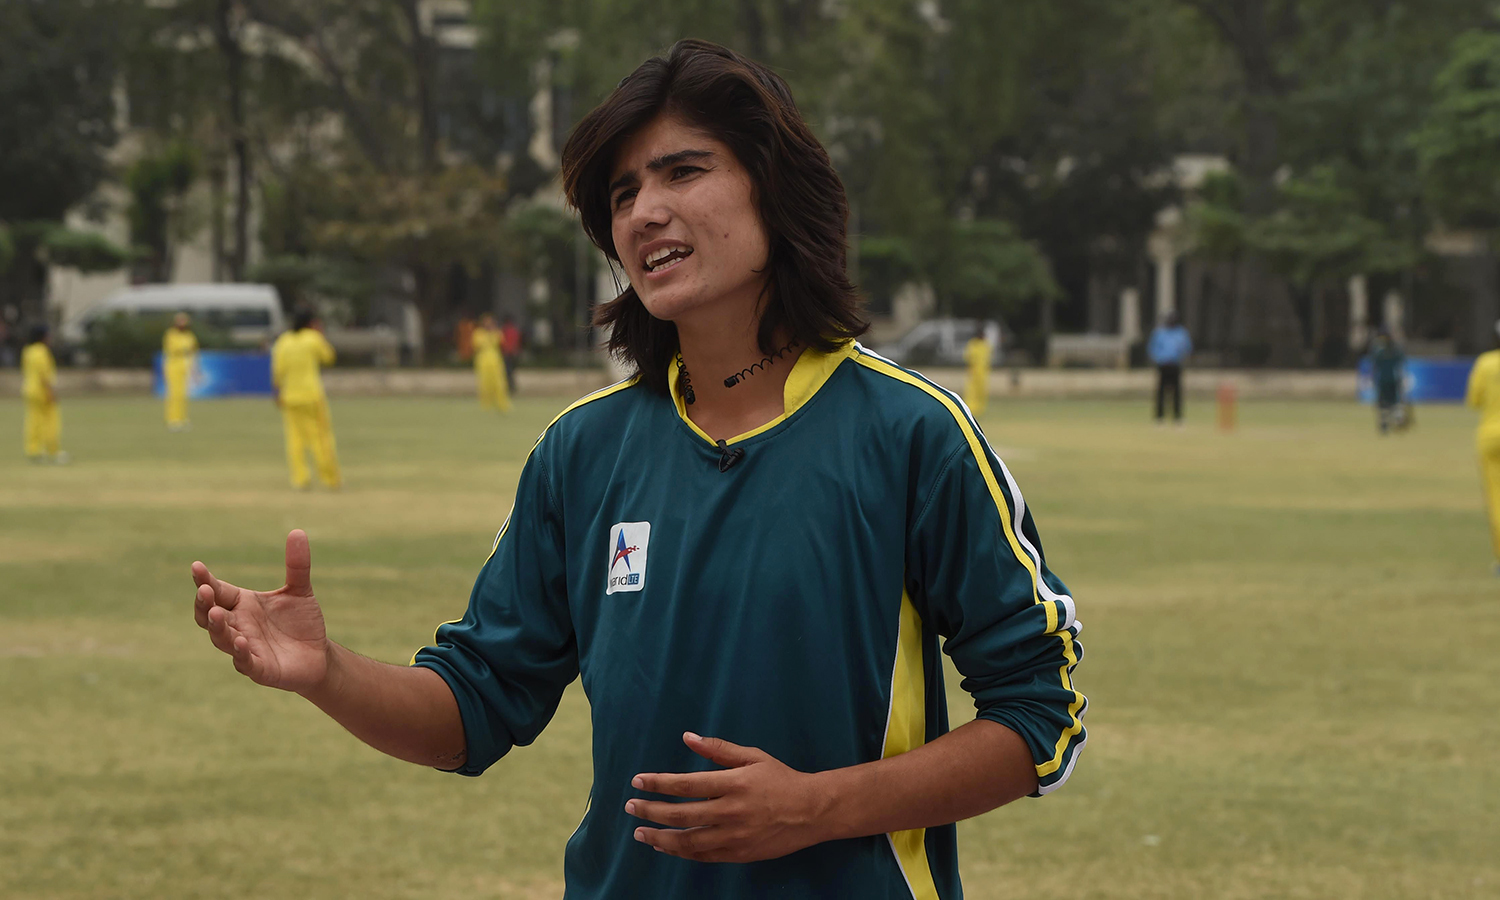 dual role diana baig s life as s cricket and football i national cricket and football player diana baig gestures as she speaks during an interview in